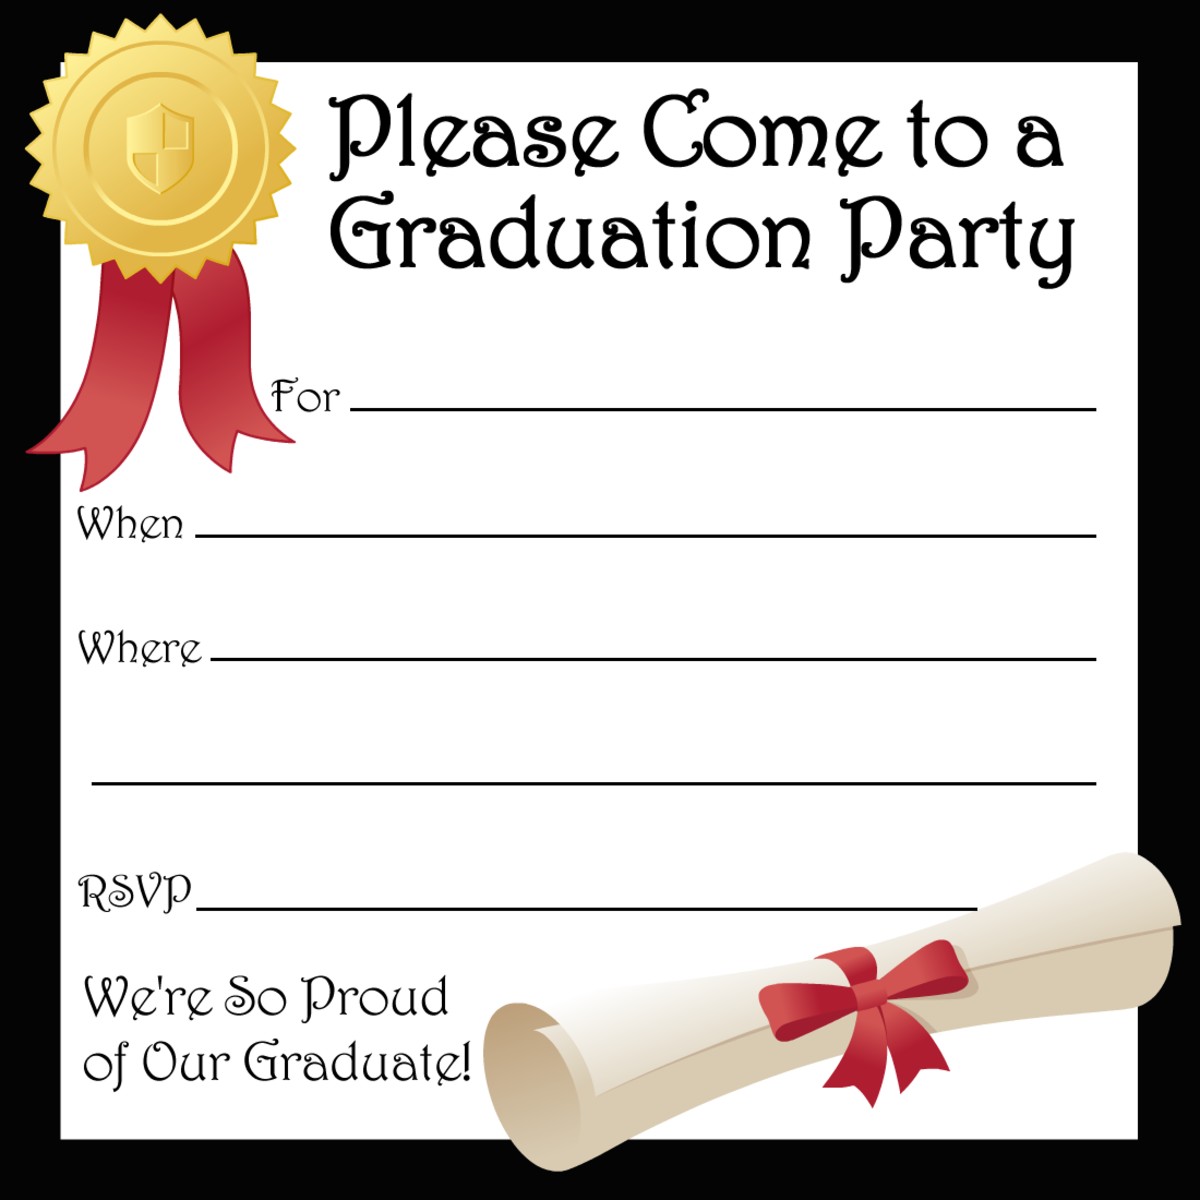 Free printable graduation party announcement with black border, seal, red ribbon and diploma